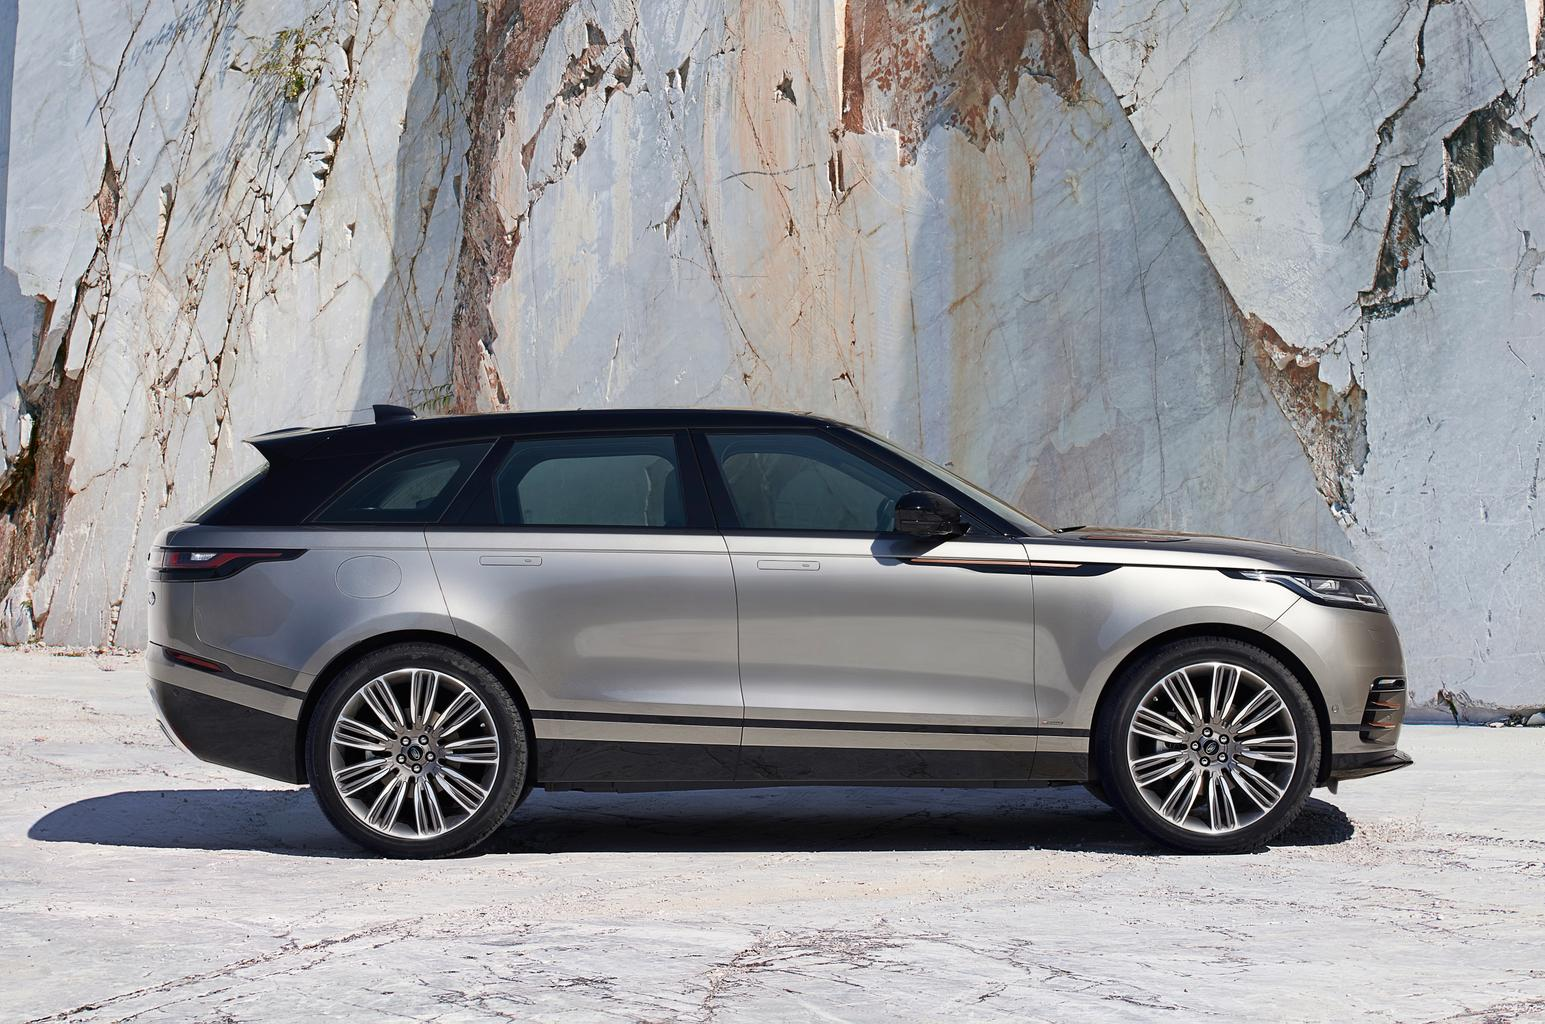 Range Rover Velar engines and equipment